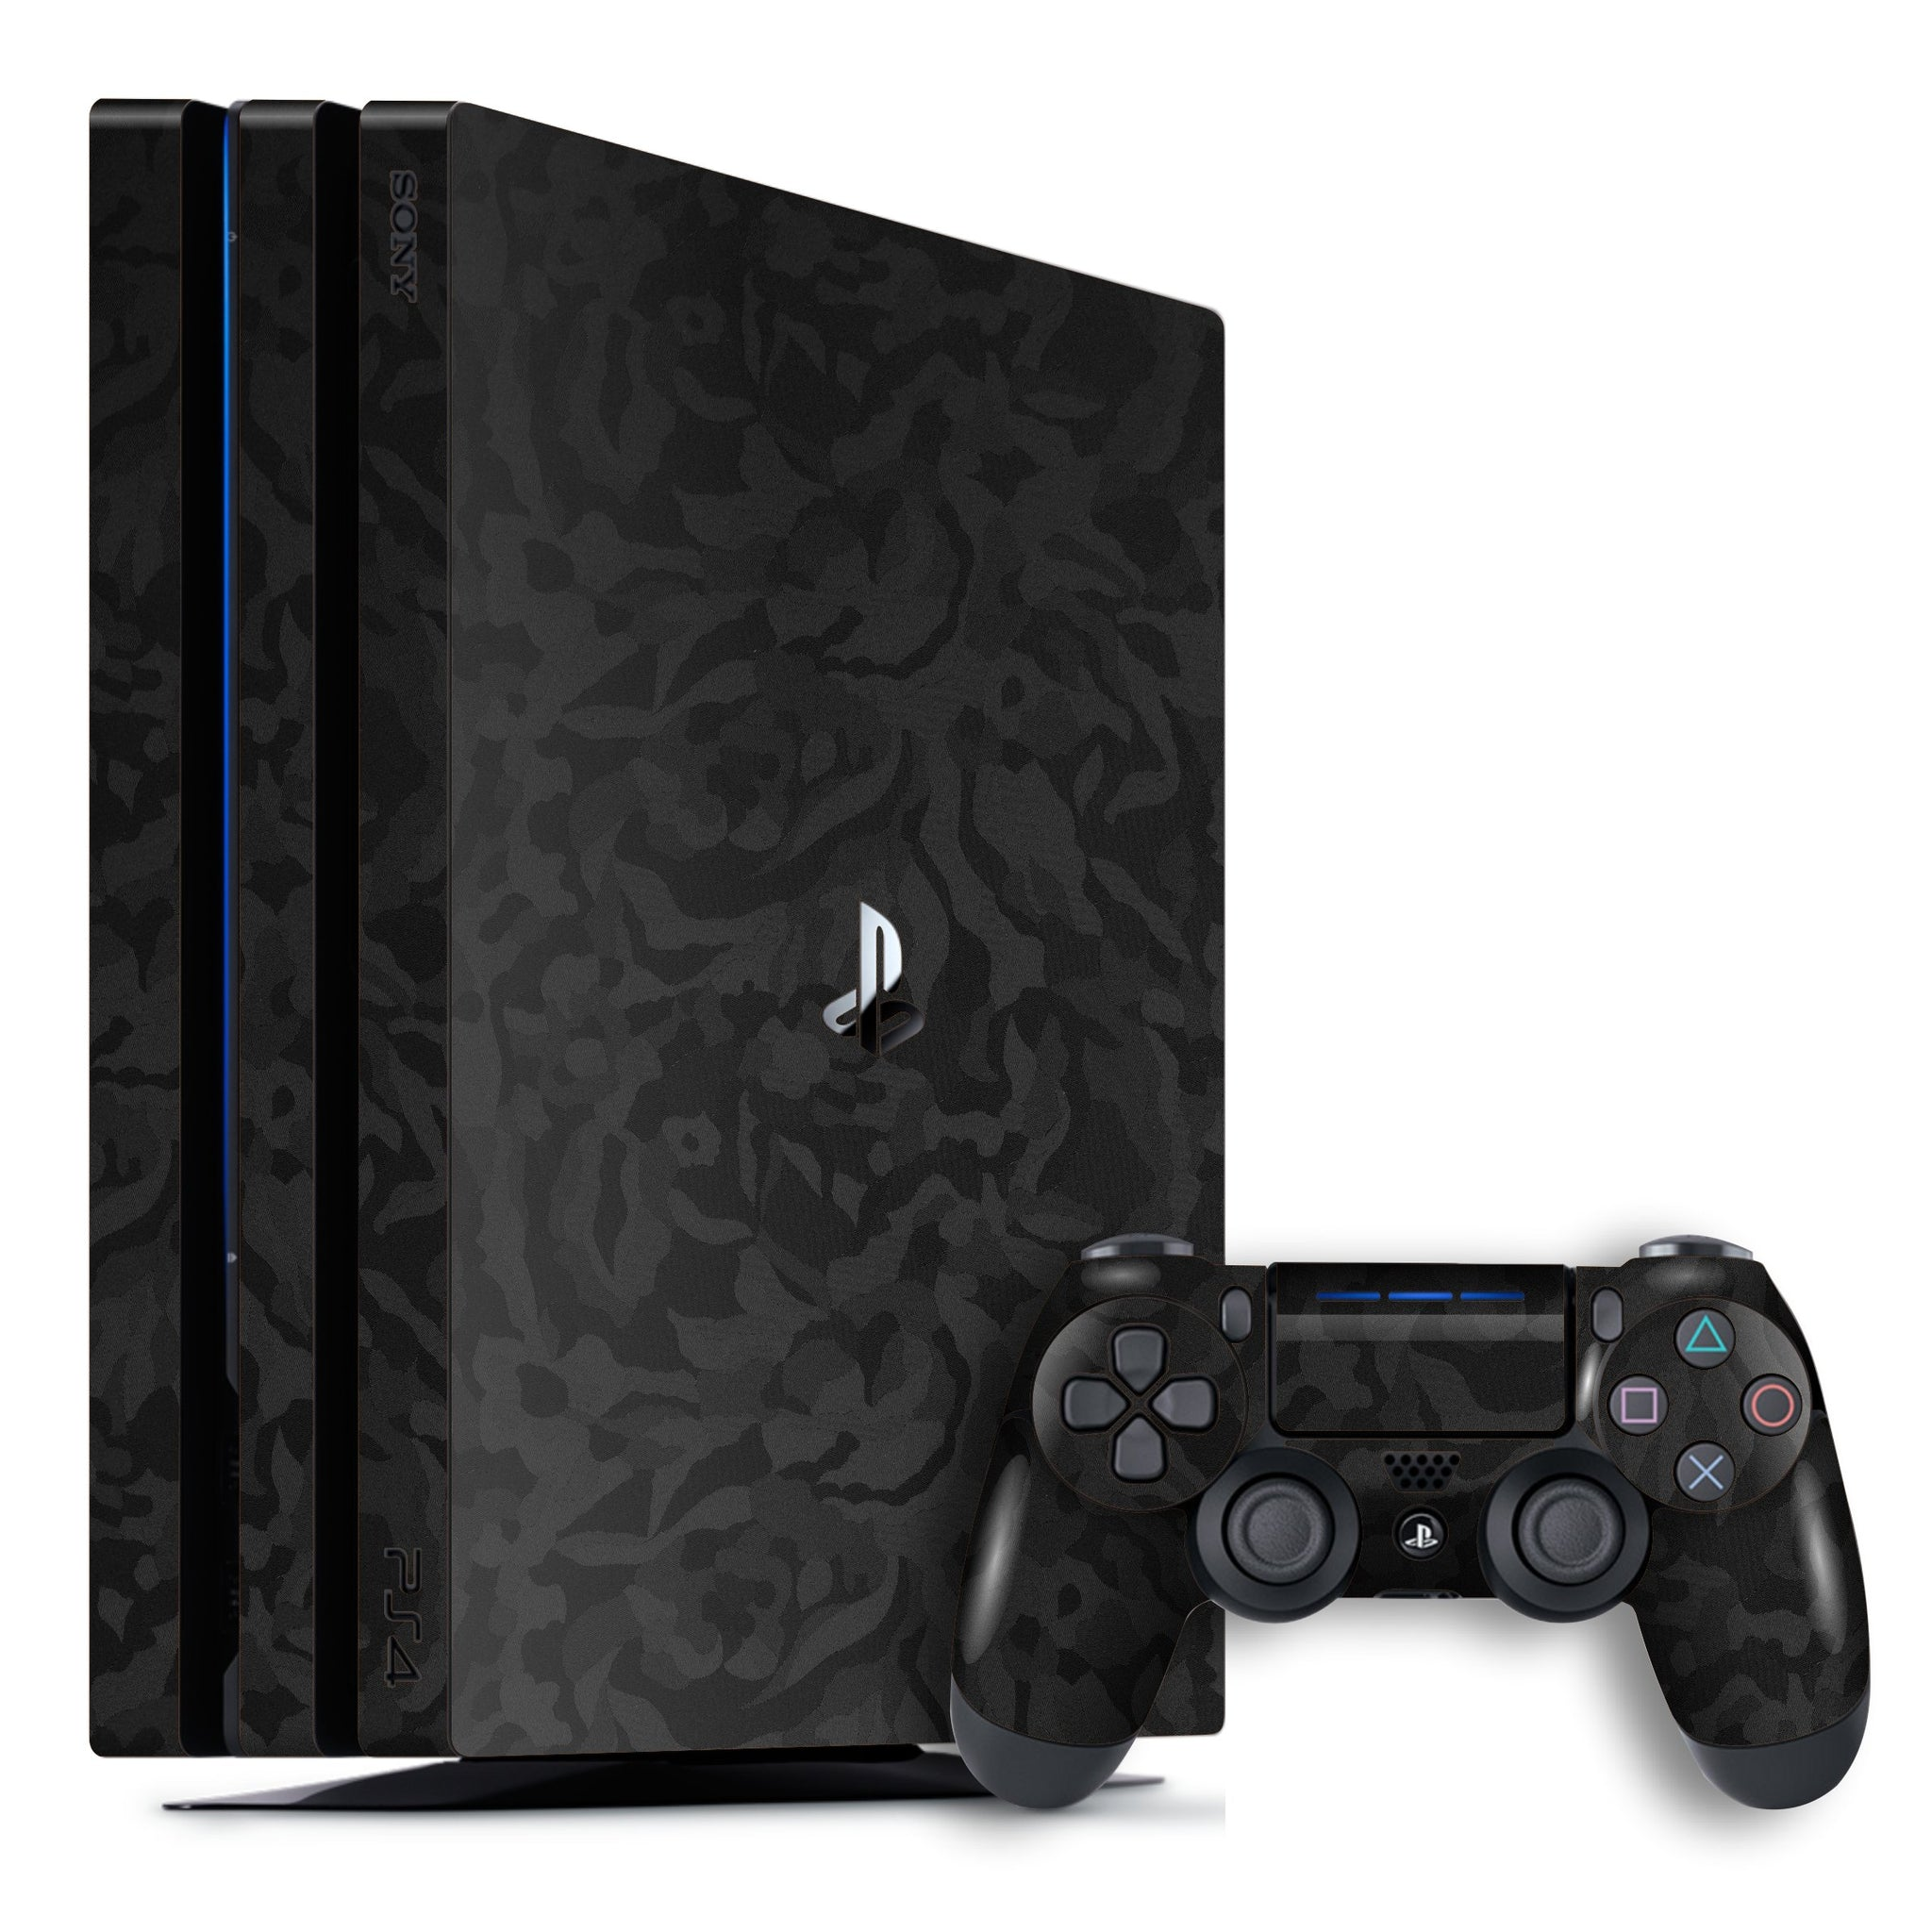 Playstation 4 PRO PS4 PRO Luxuria Black 3D Textured Camo Camouflage Skin Wrap Decal Protector | EasySkinz